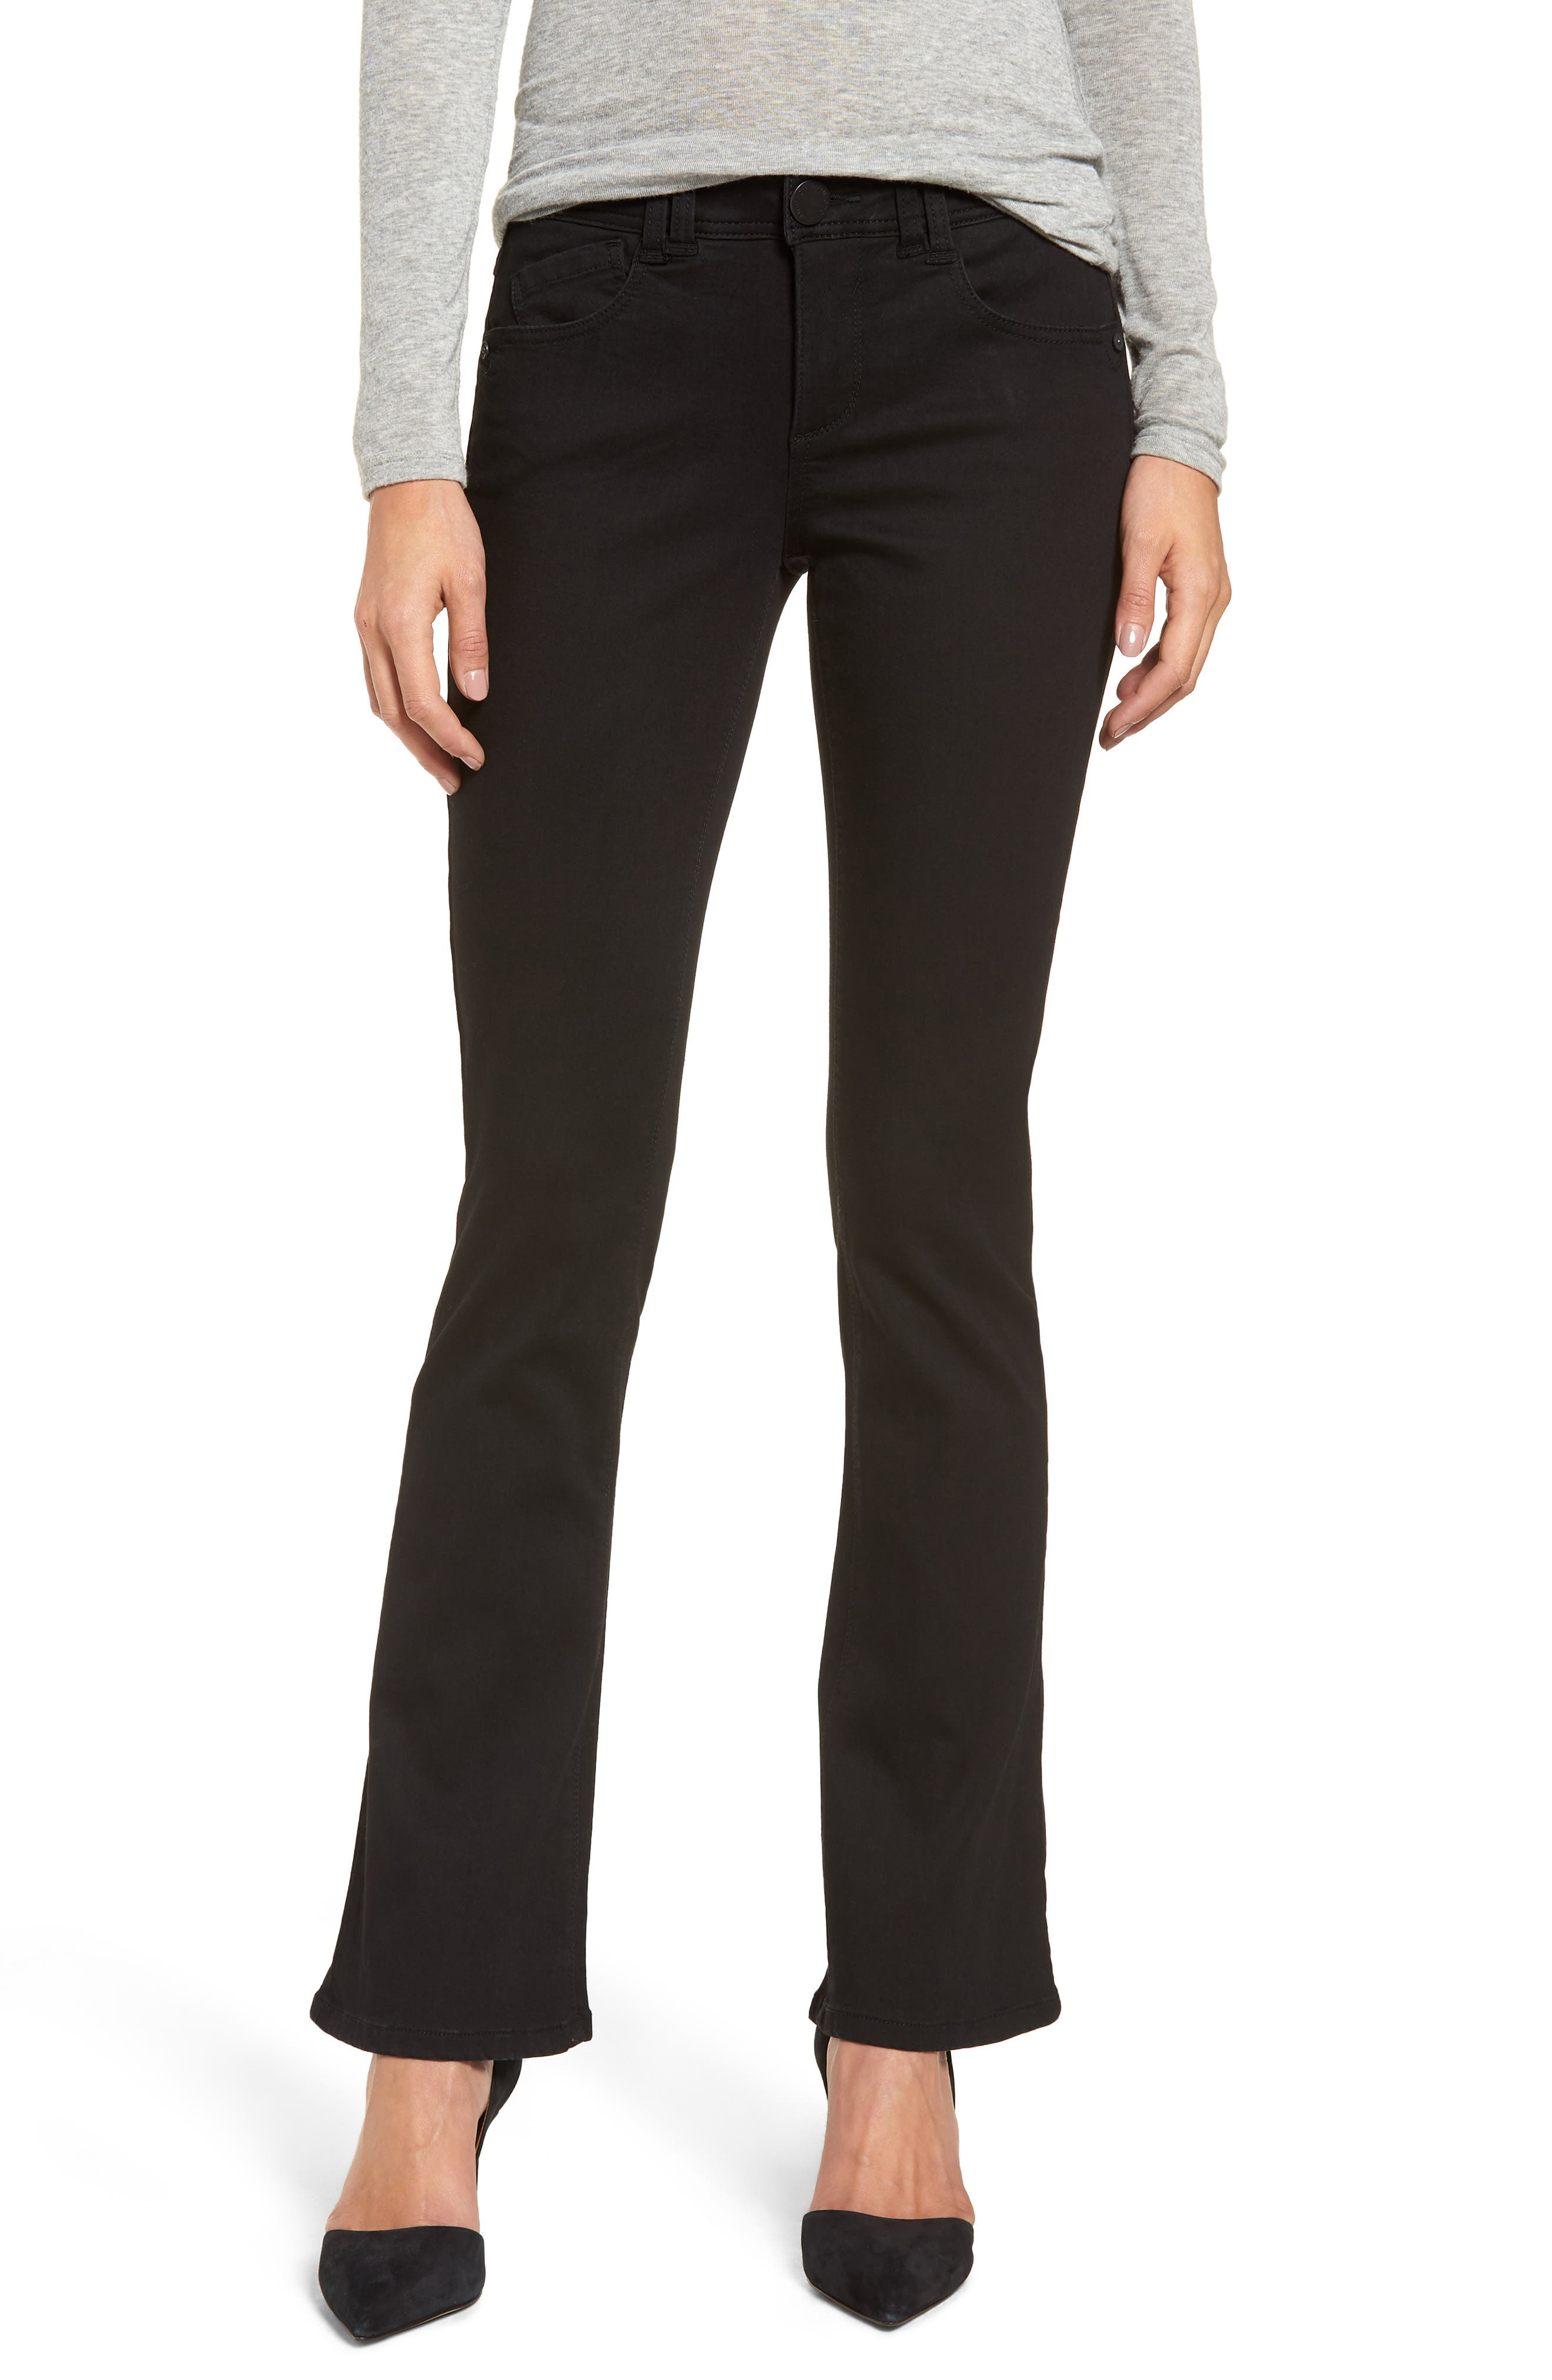 Ab-solution Itty Bitty Bootcut Jeans,                         Main,                         color, Black